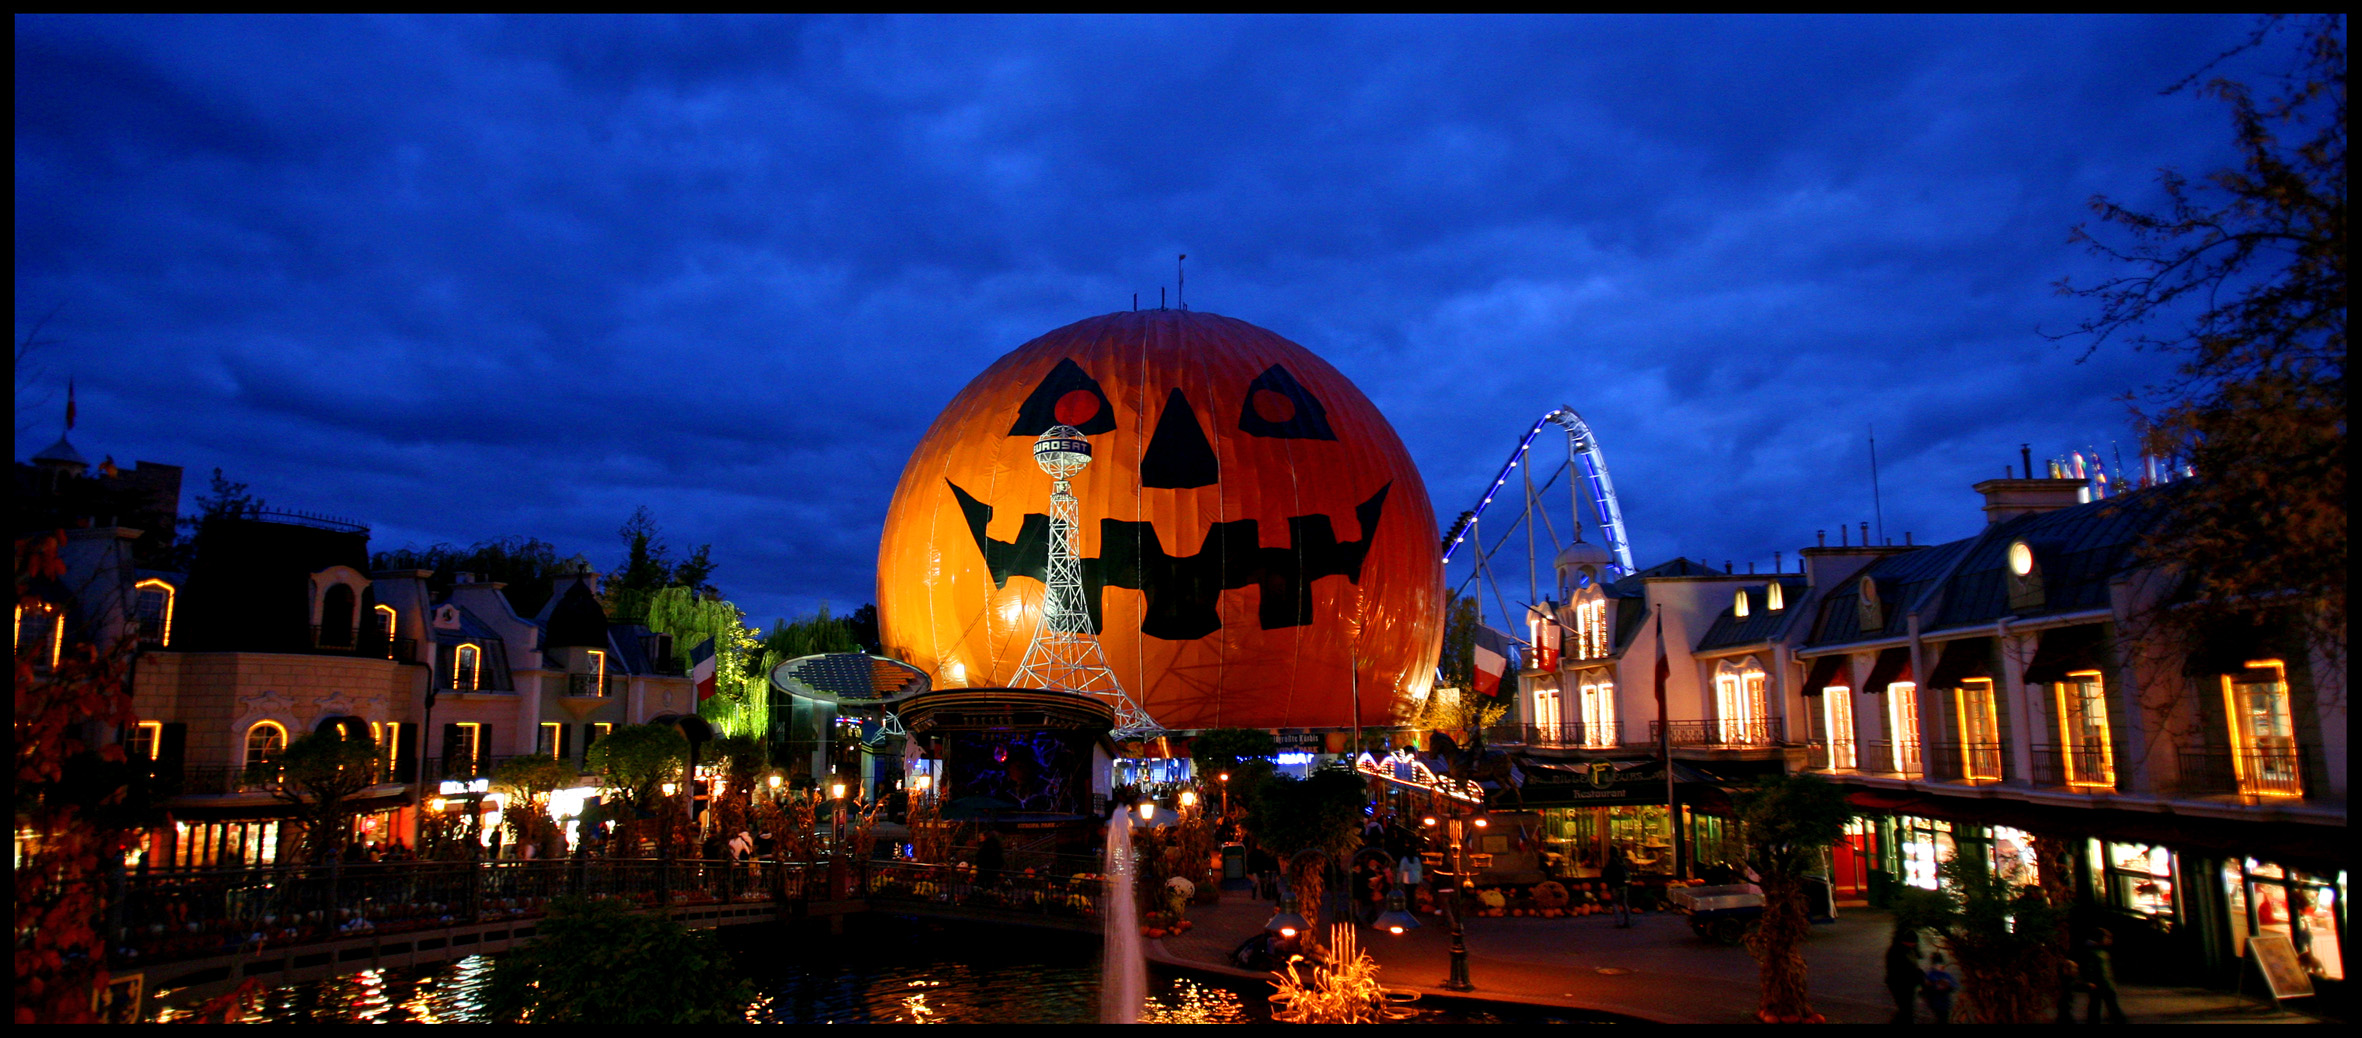 europa park germany s biggest sea of pumpkins press europa park unternehmensportal. Black Bedroom Furniture Sets. Home Design Ideas